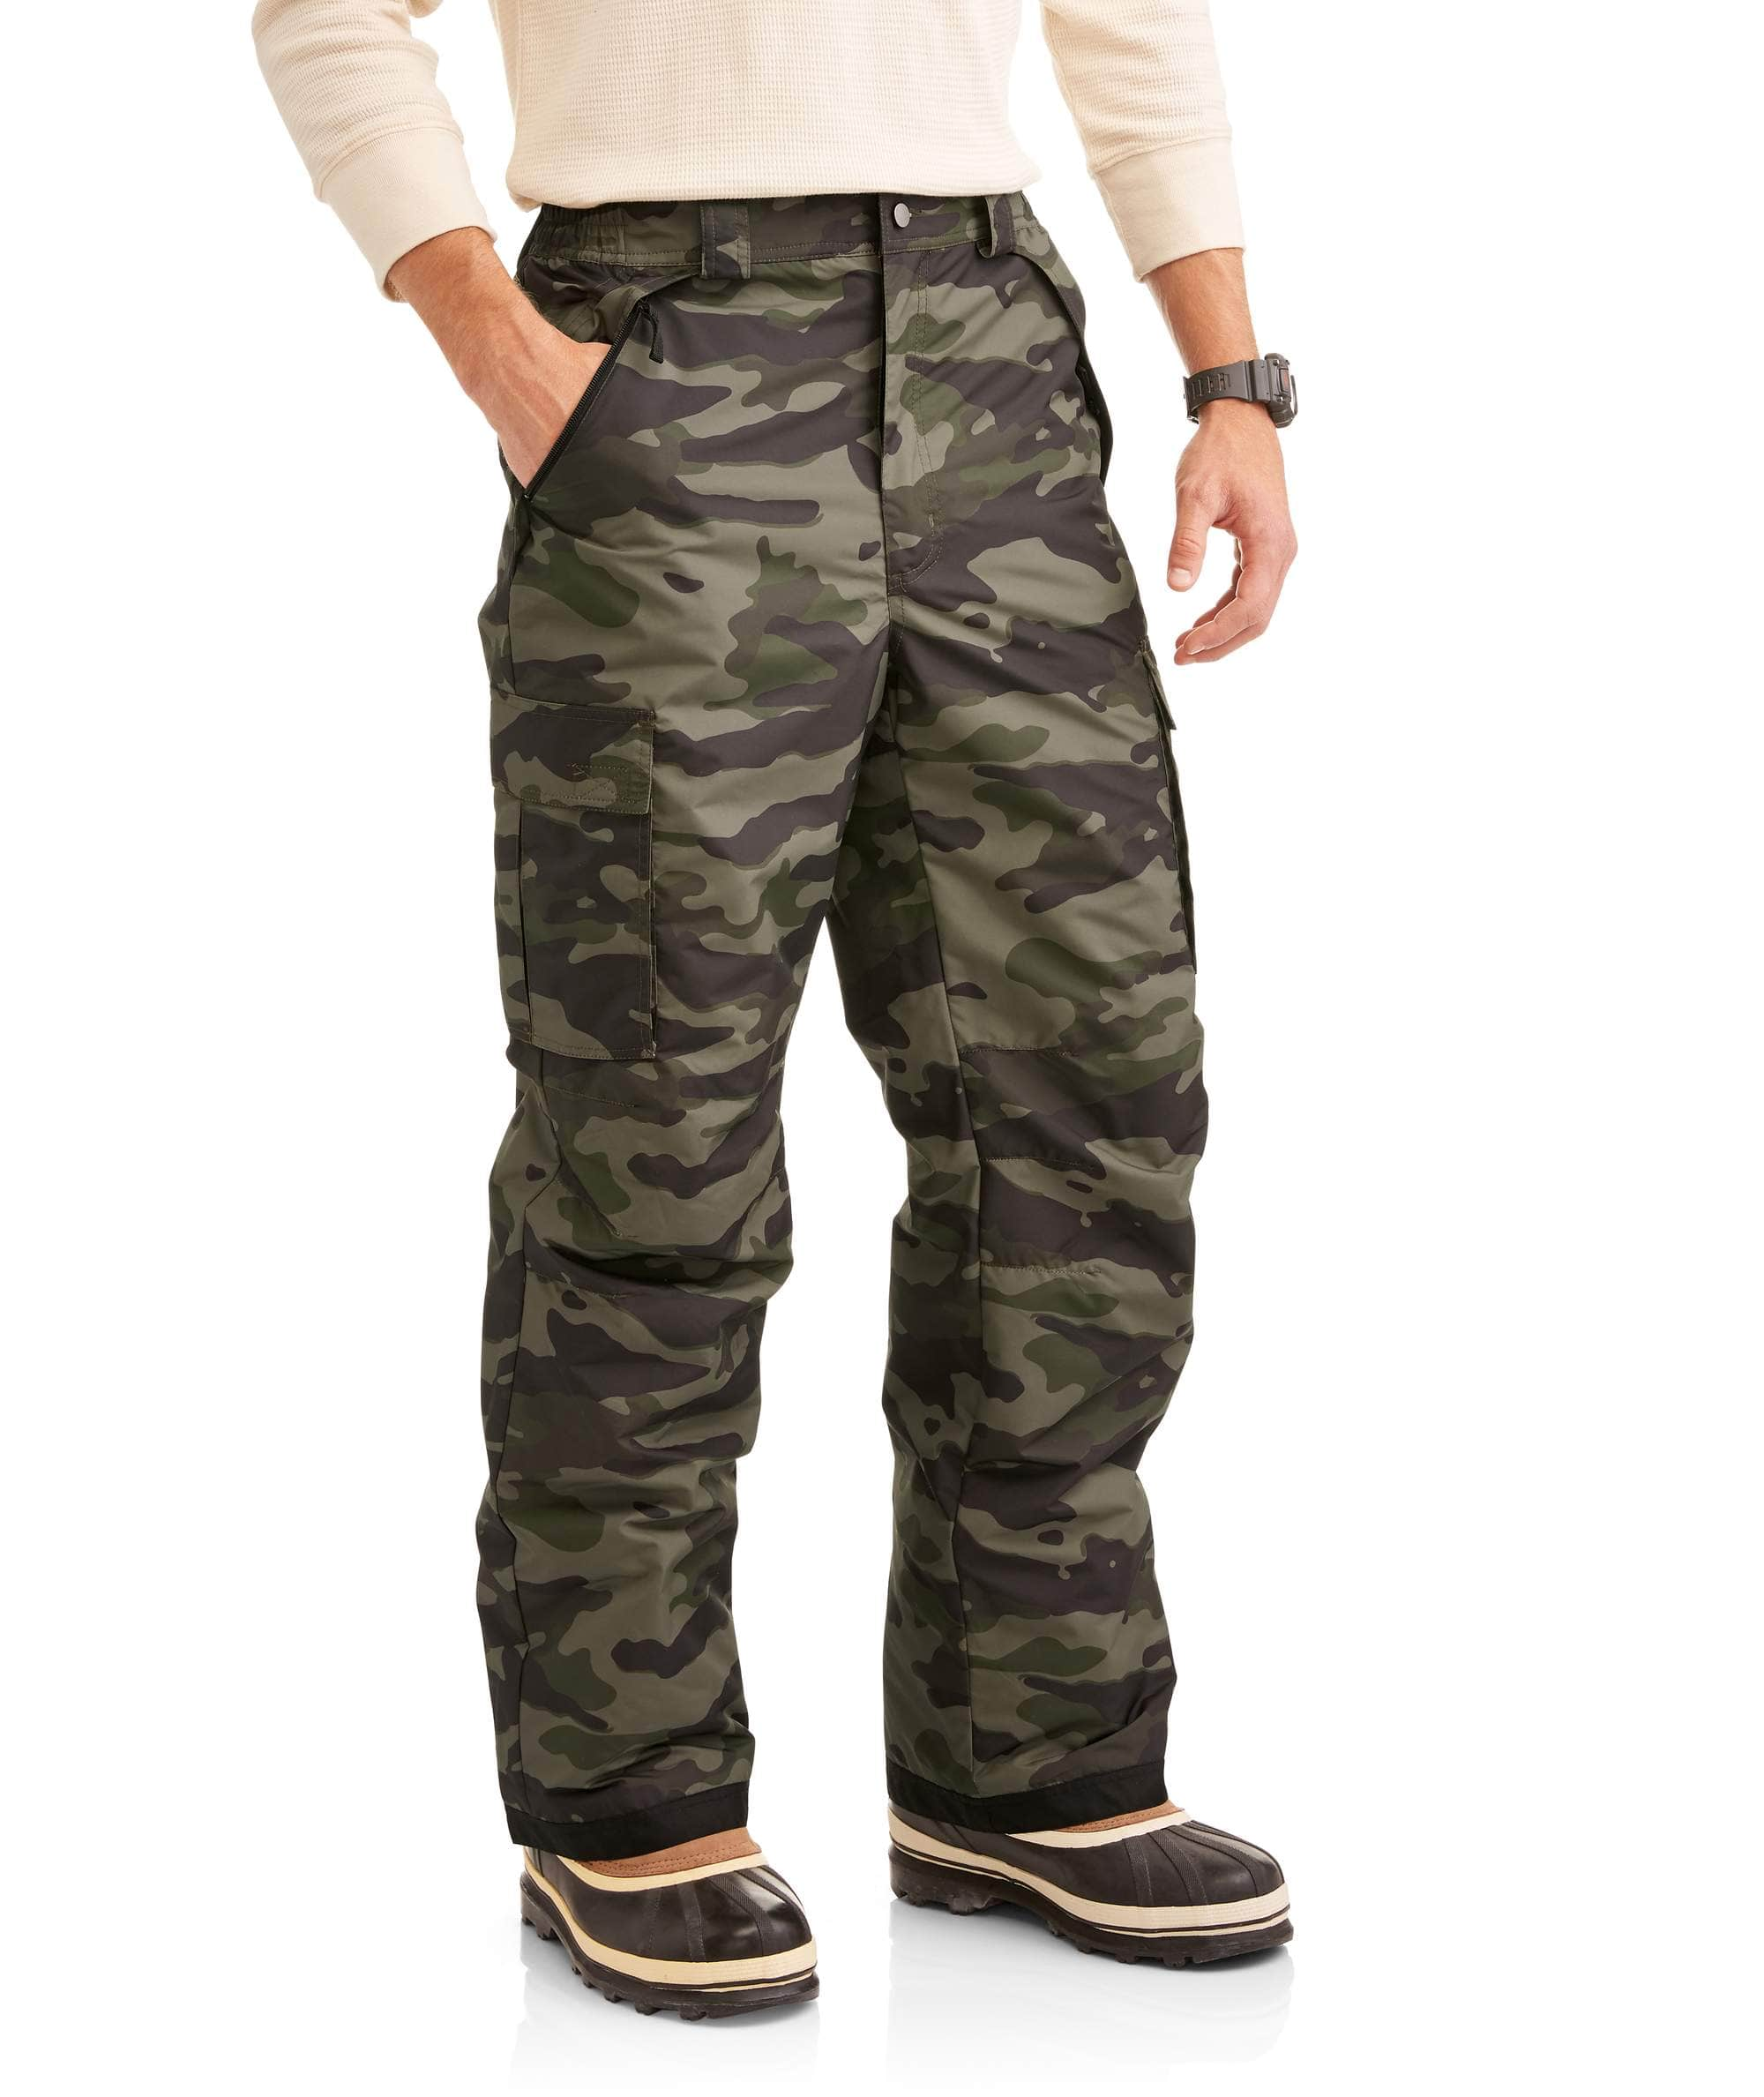 Iceburg Men's Cargo Snowboard Pant (2 colors) $16 + Free store pick up at Walmart